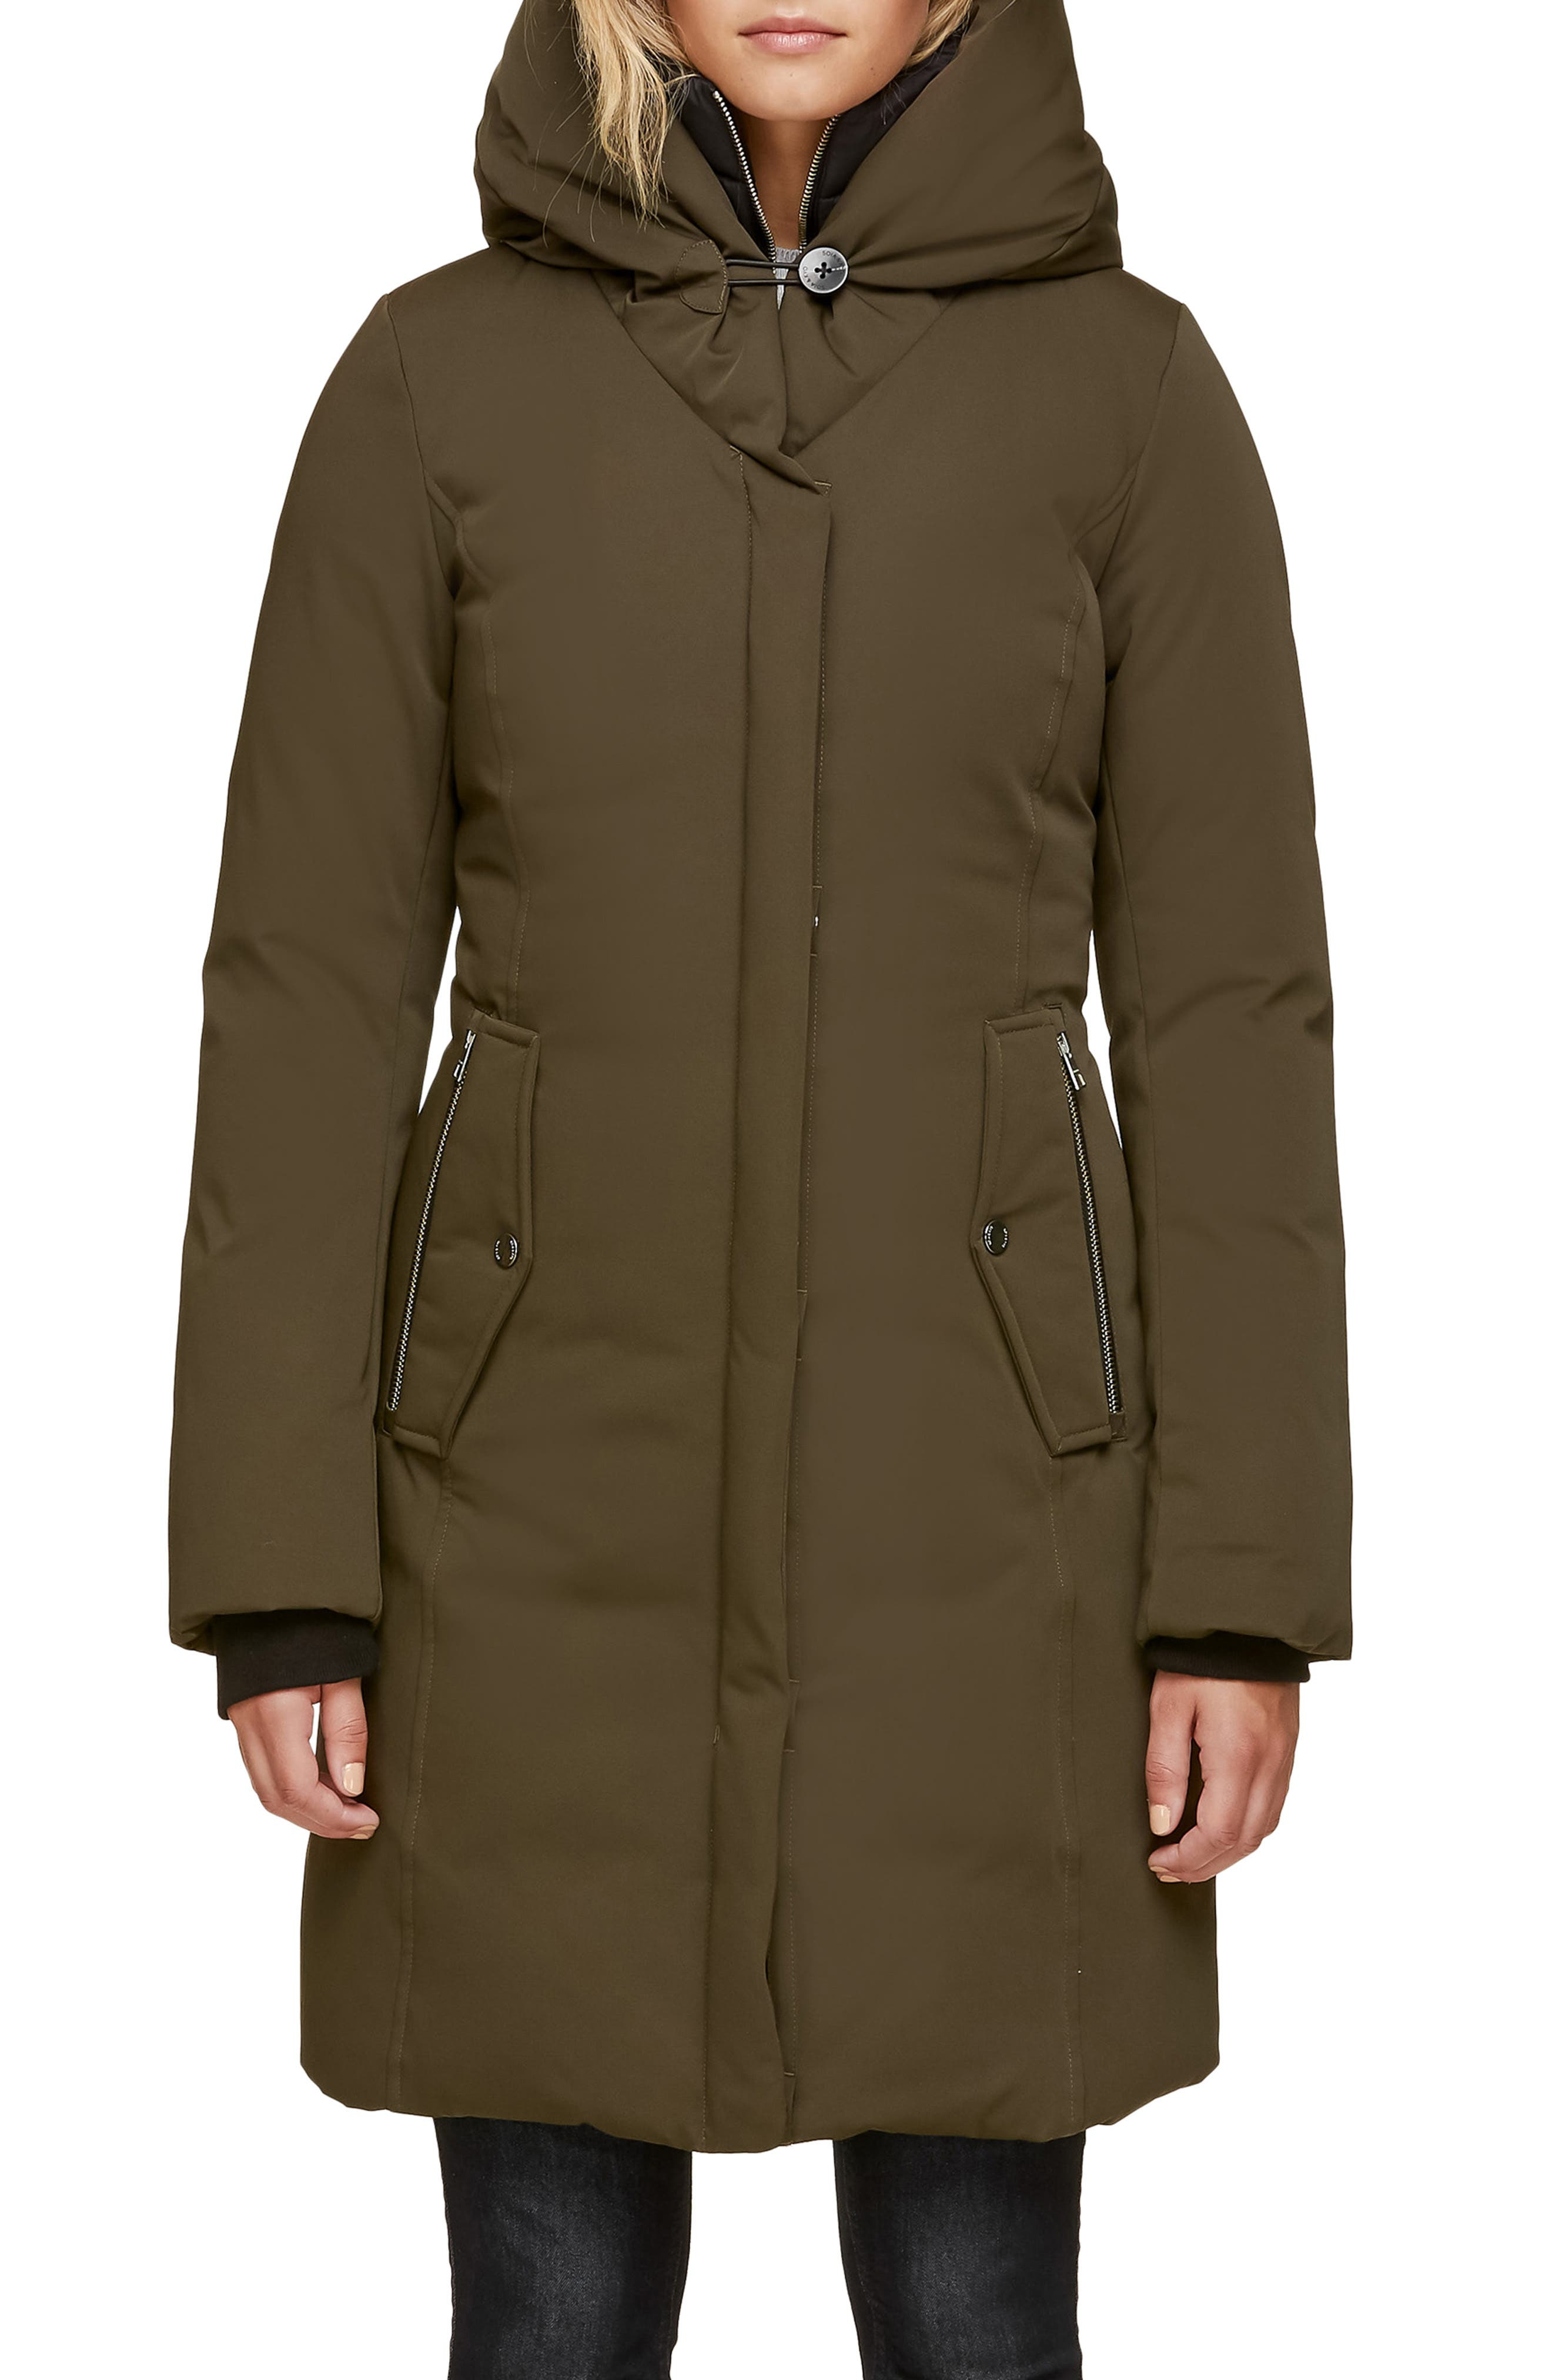 SOIA & KYO Slim Fit Hooded Down Coat, Main, color, ARMY